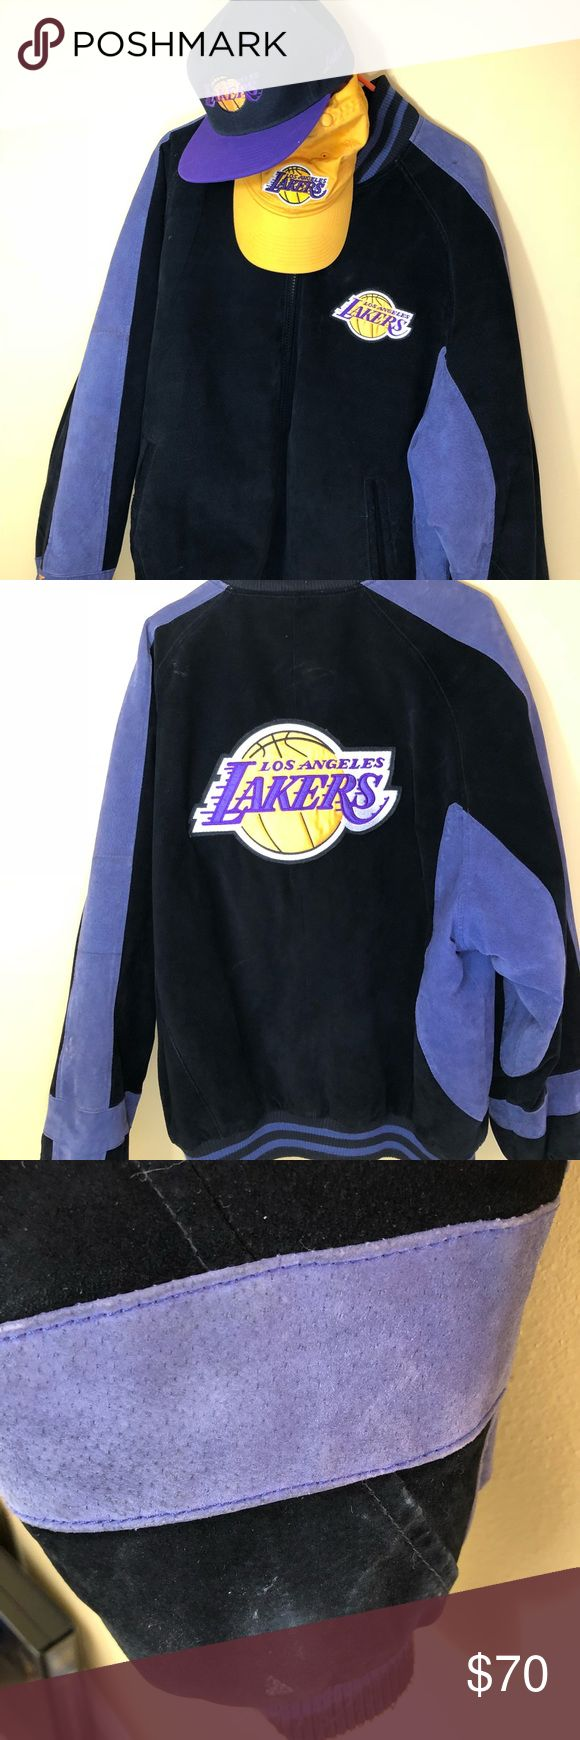 Carl Banks G-III Suede LA Lakers Jacket & 2 Hats Carl Banks G-III Suede LA Lakers Jacket & 2 Hats. Size is XL. The jacket has a few spots on it but nothing severe. NBA Carl Banks Jackets & Coats Bomber & Varsity